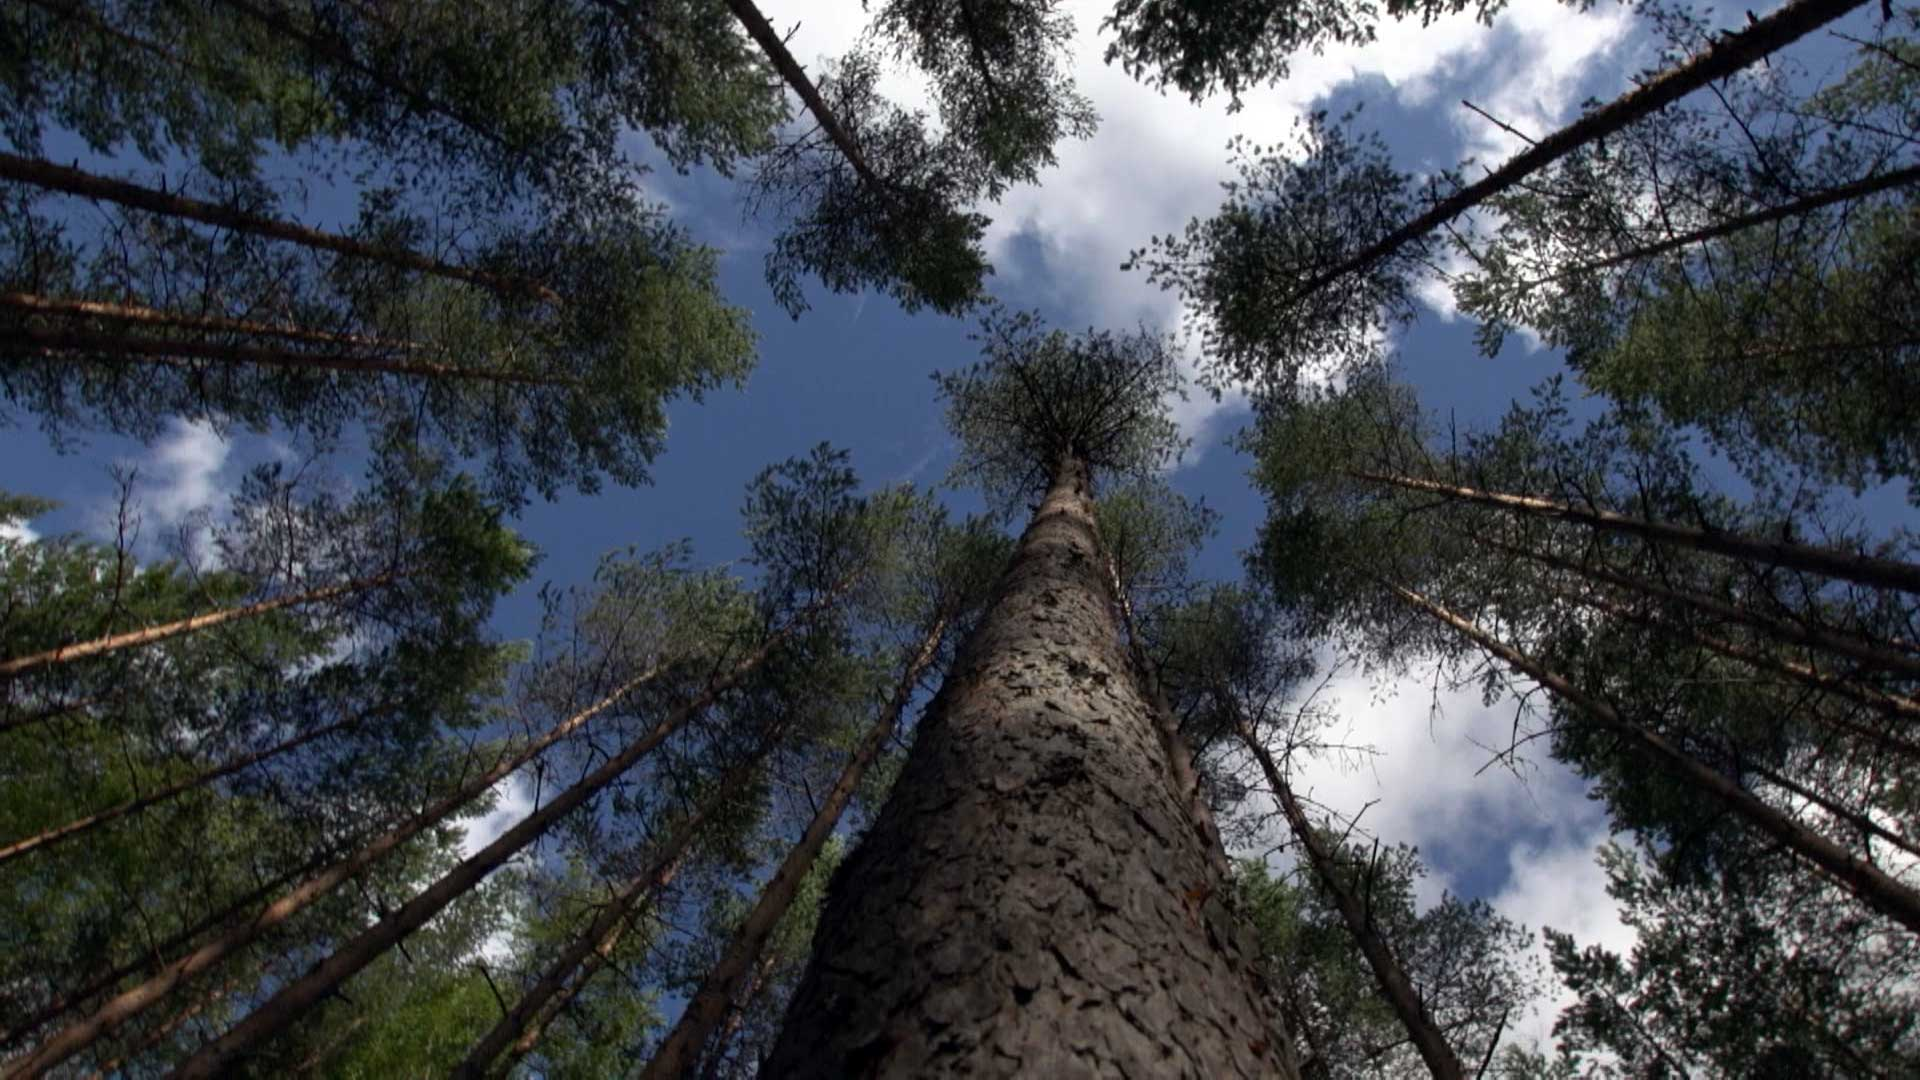 How Trees Can Save Us…Five Perspectives on Humanity's Relationship with Our Forests